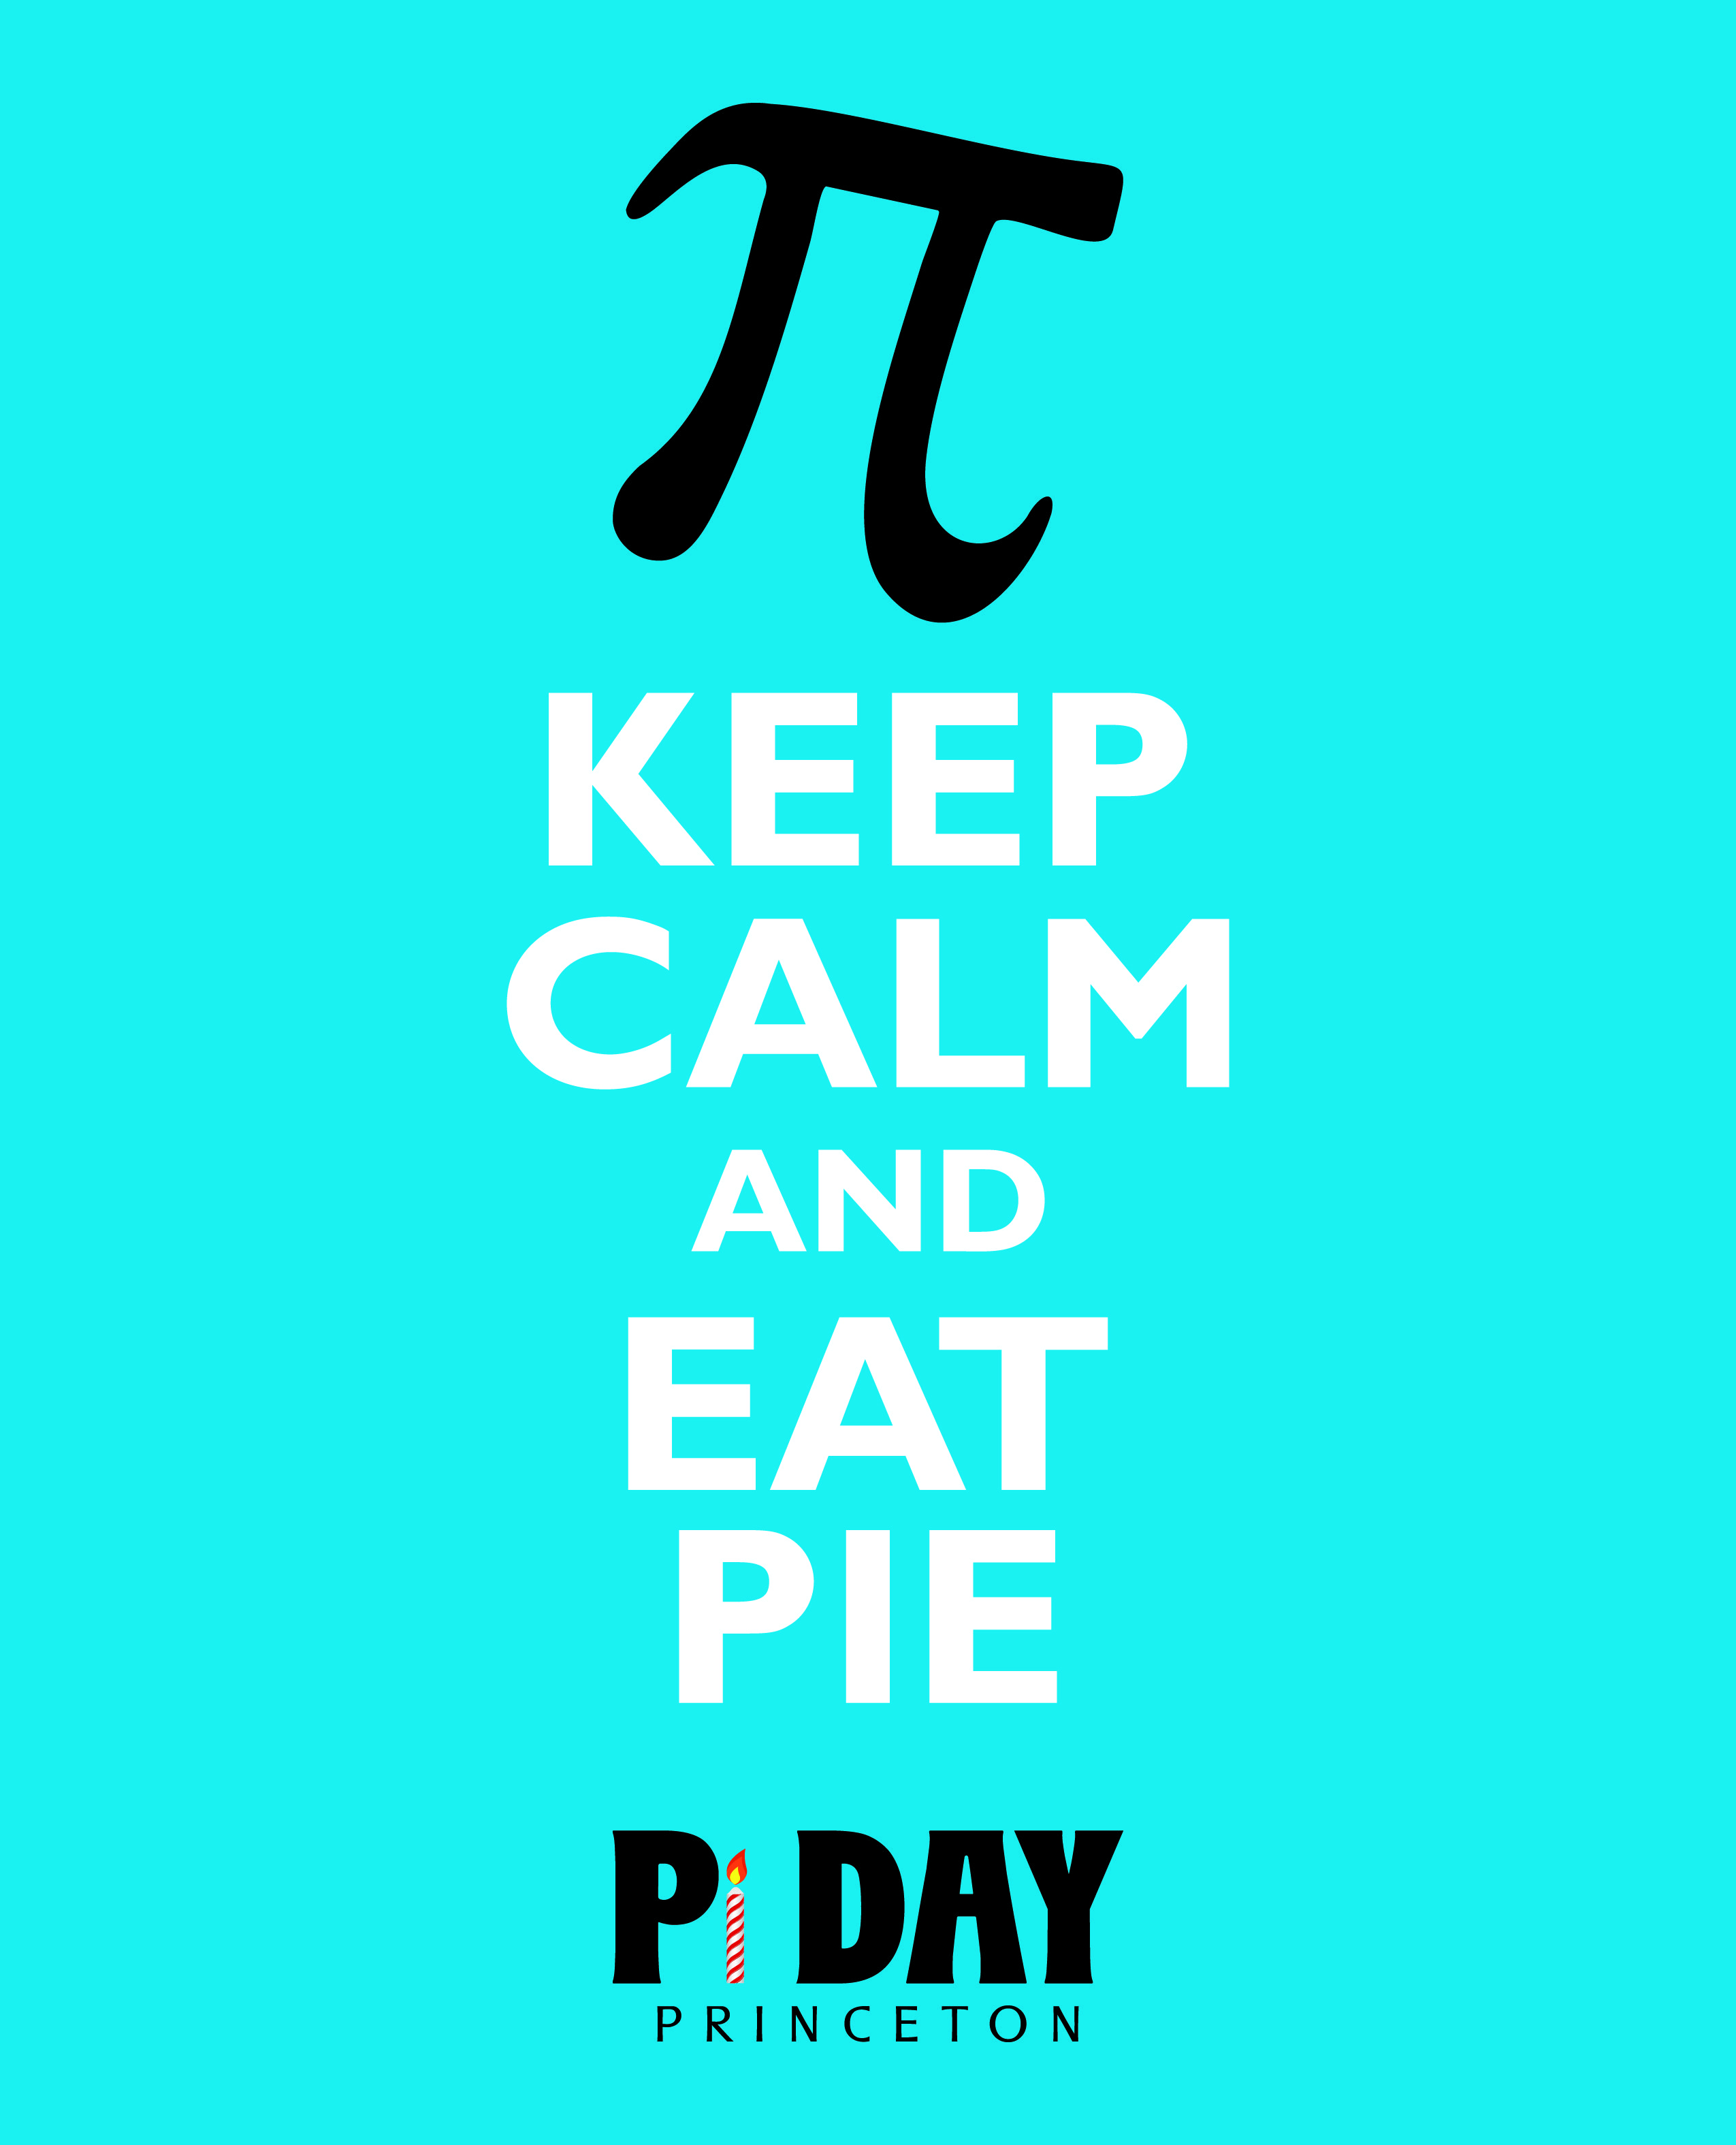 Pi Day Princeton Is A Celebration Of All Things Einstein